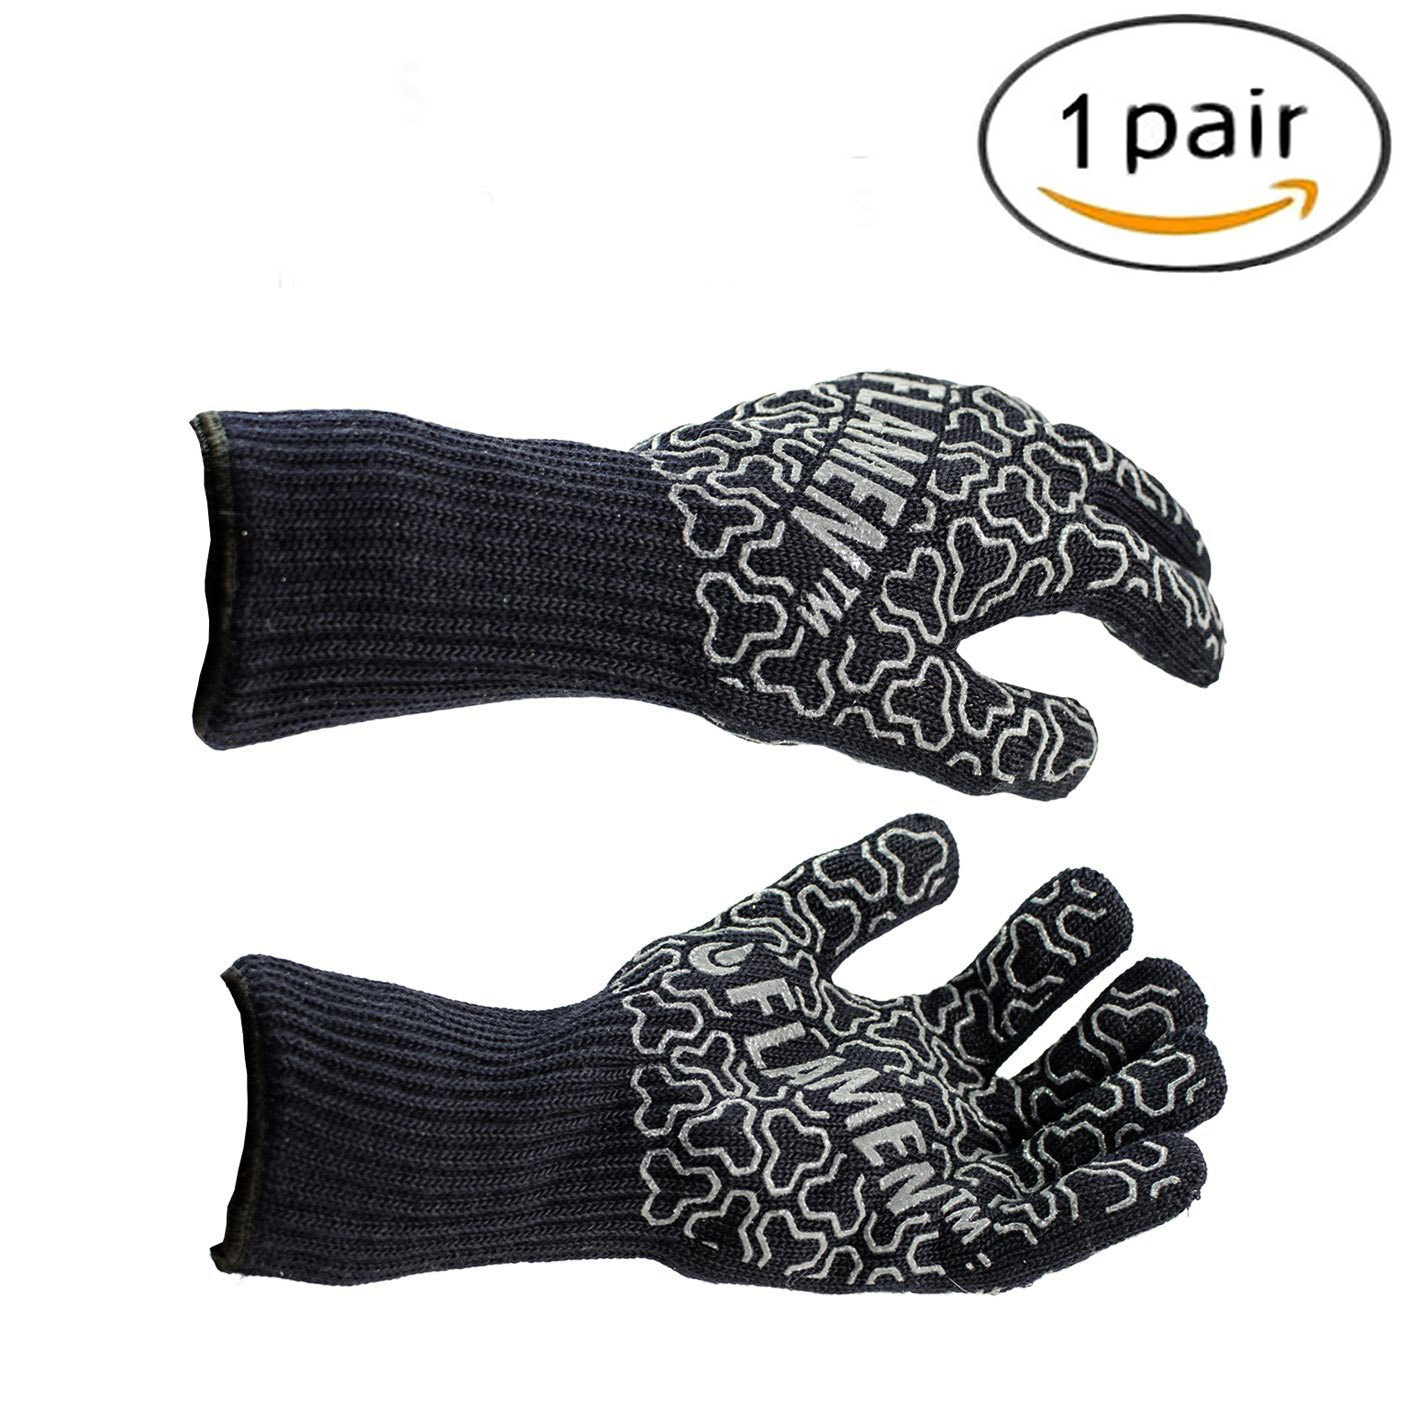 Heat Resistant Gloves with Red Non-Slip Silicone Grip BBQ Grilling Cooking Gloves 932�HKitchen Oven Mitts Gloves with Fingers size 1 Pair 5b07cdc72a00e41bd804cf05